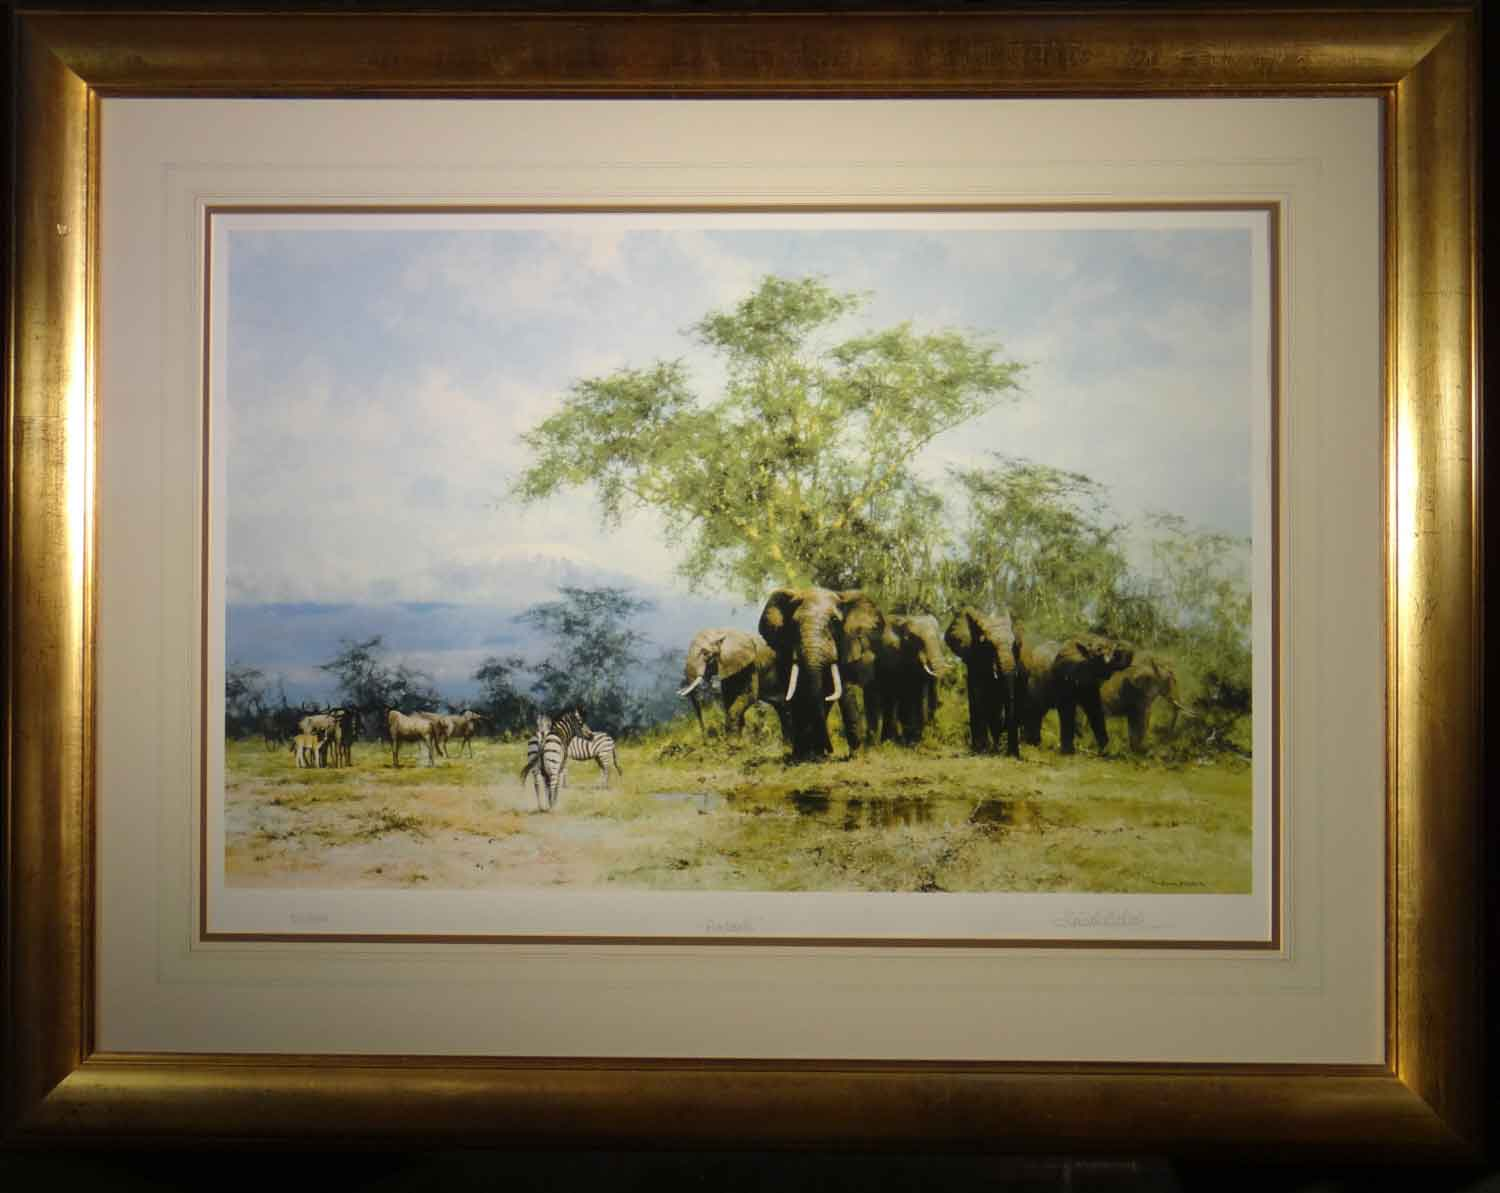 david shepherd signed limited edition print Amboseli